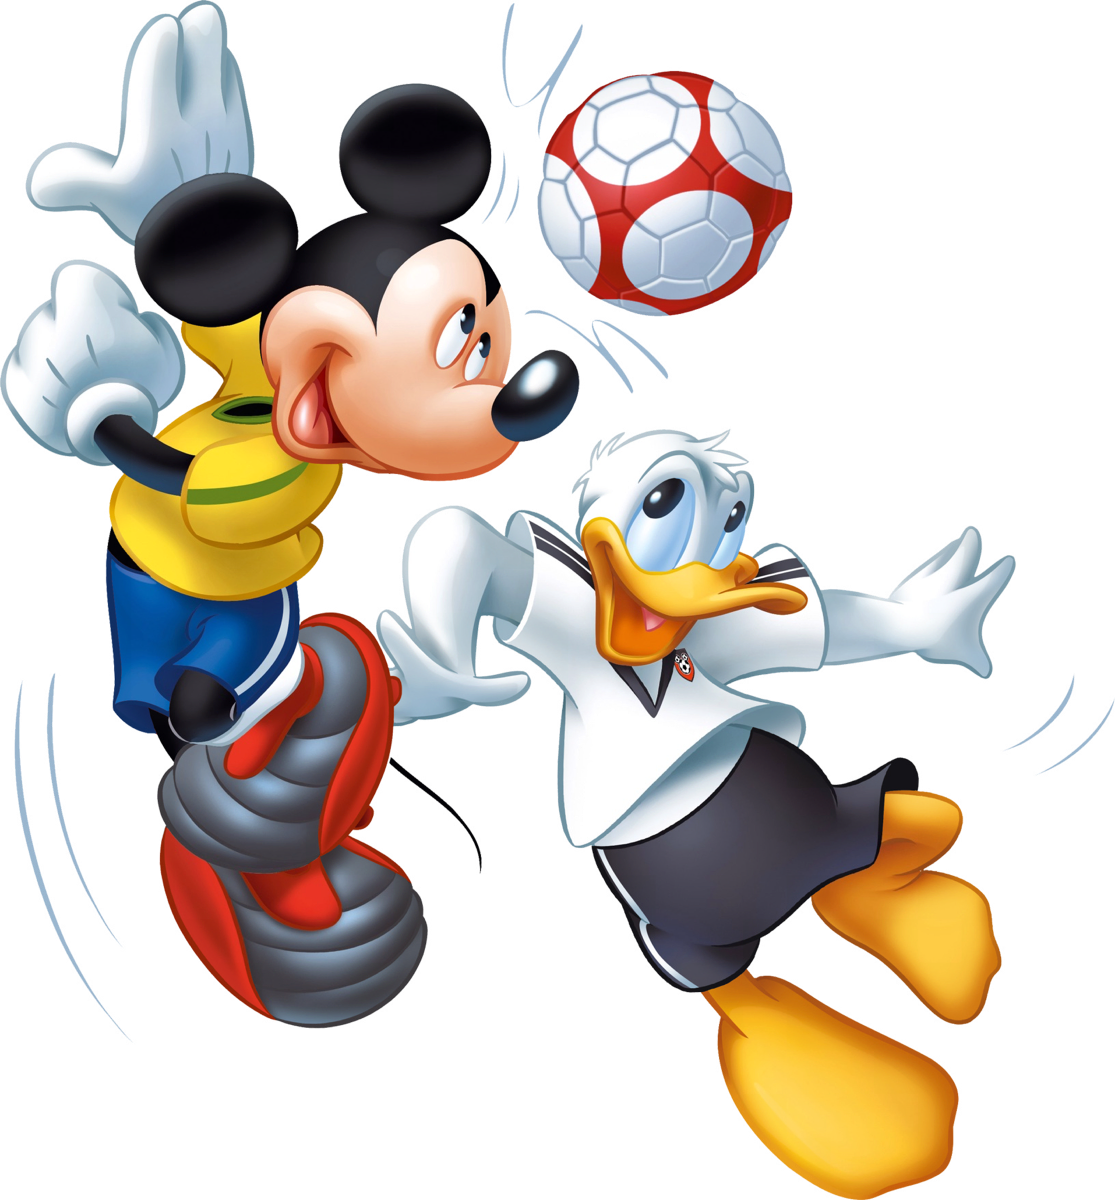 American football mickey clipart vector royalty free stock Mickey Mouse Minnie Mouse Donald Duck The Walt Disney Company ... vector royalty free stock